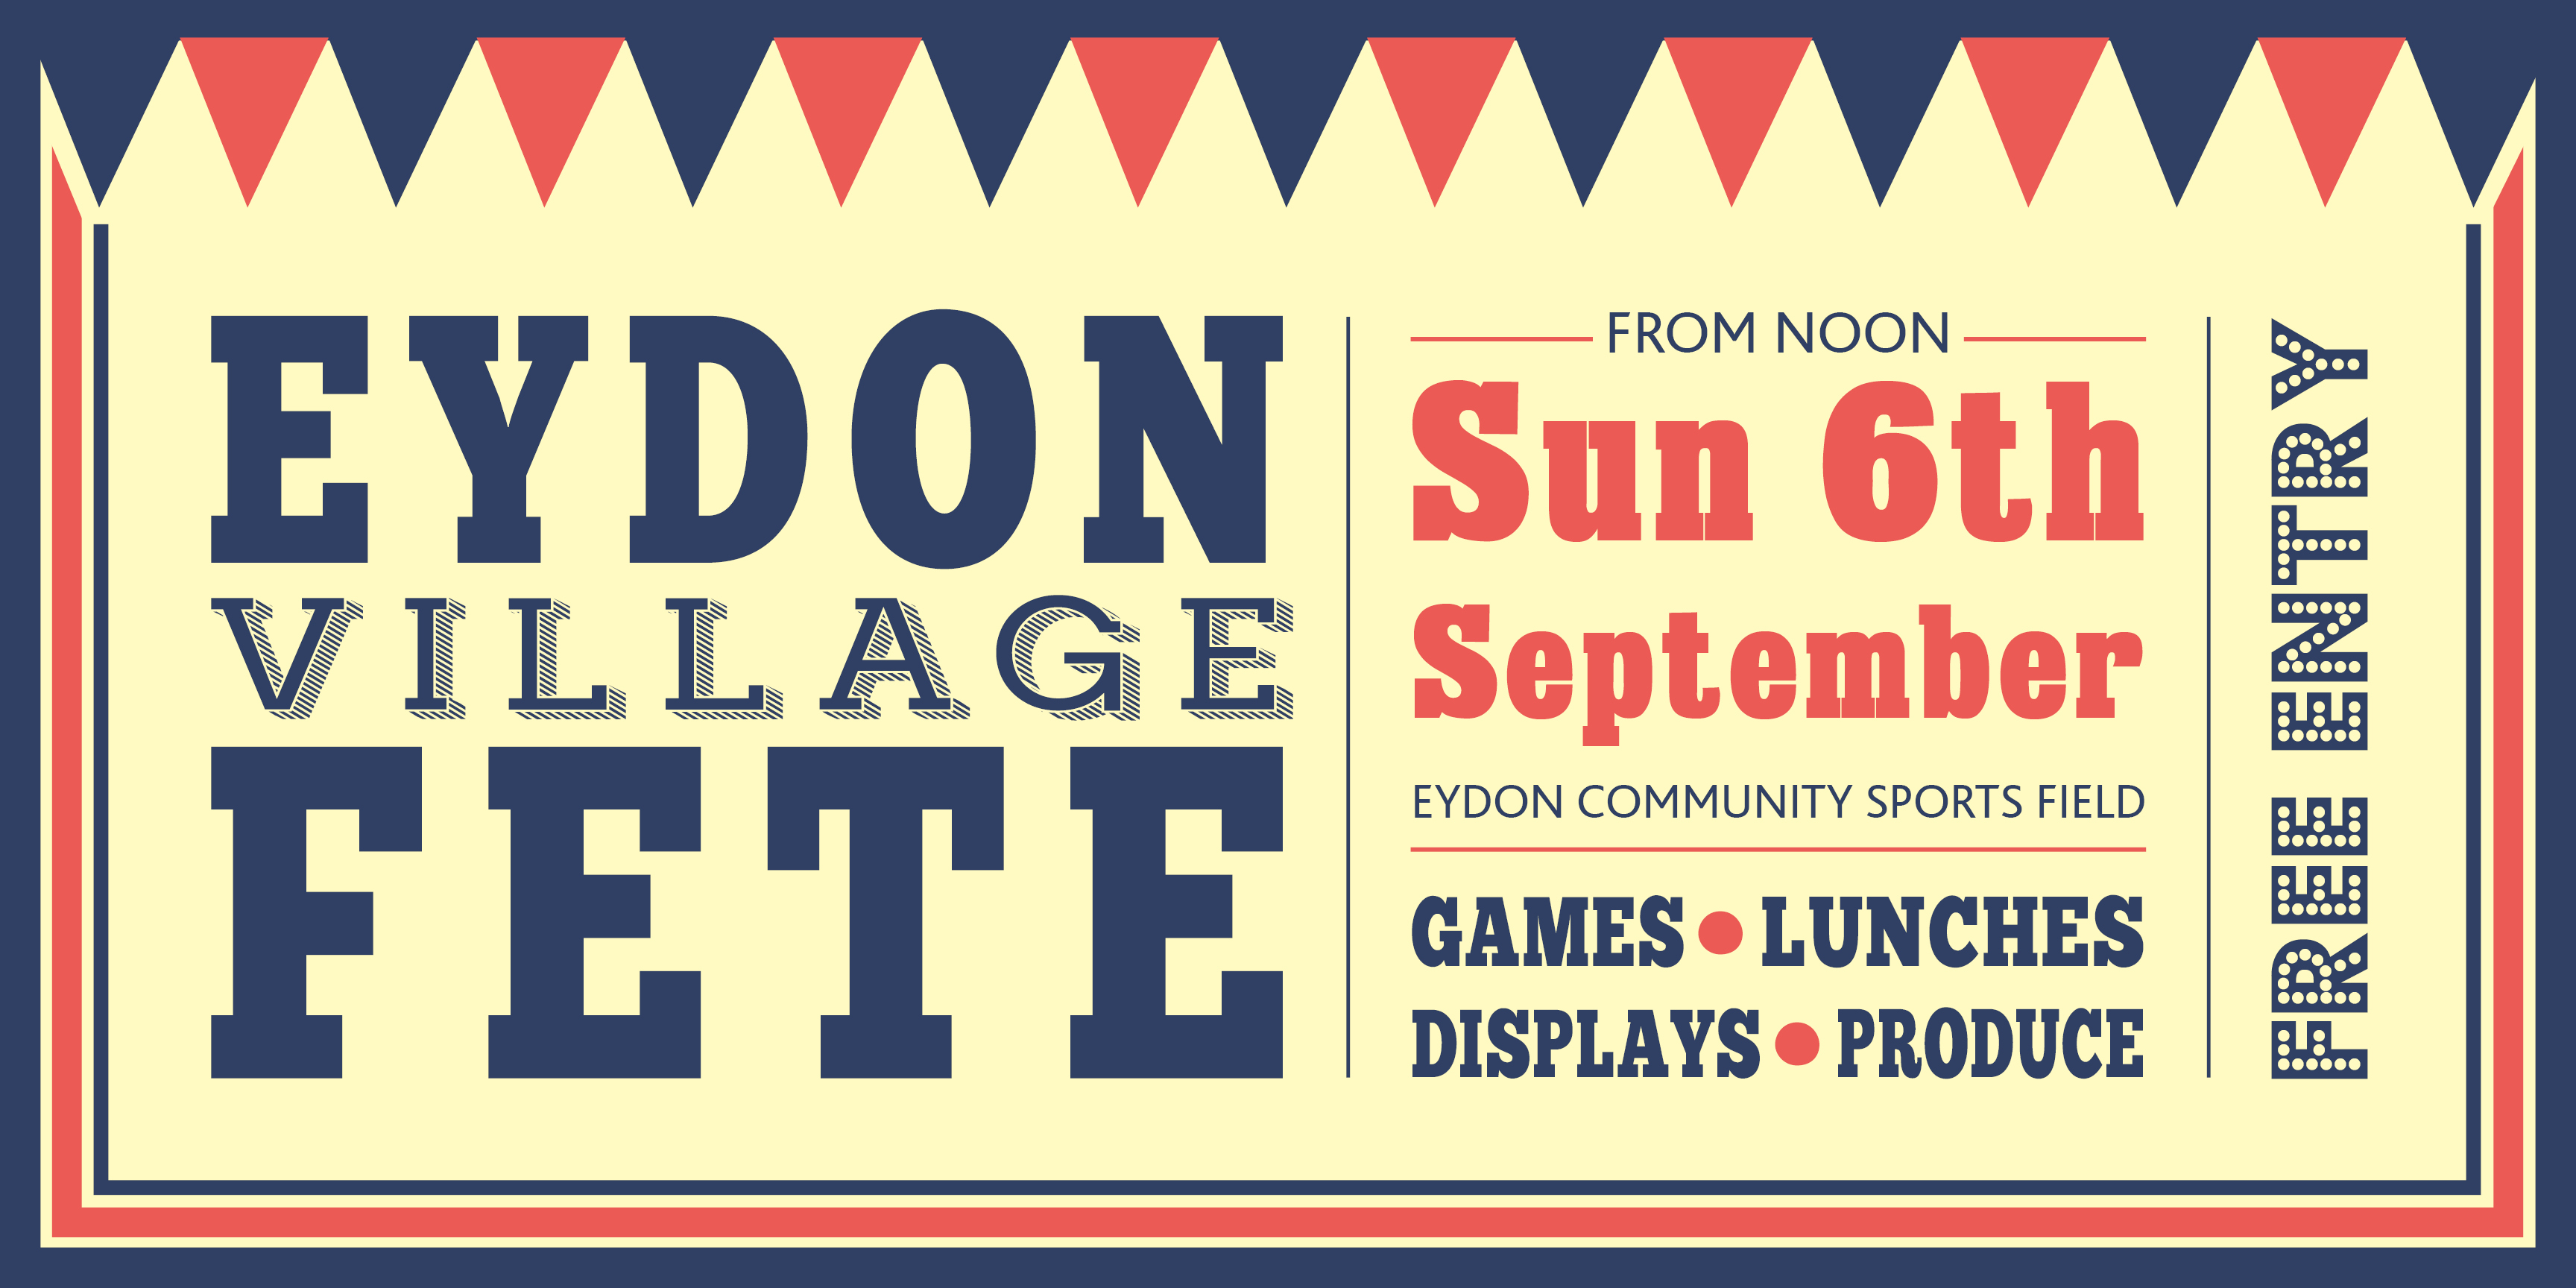 banner_eydonfete2014_4ftwidex2fthigh_PRESS